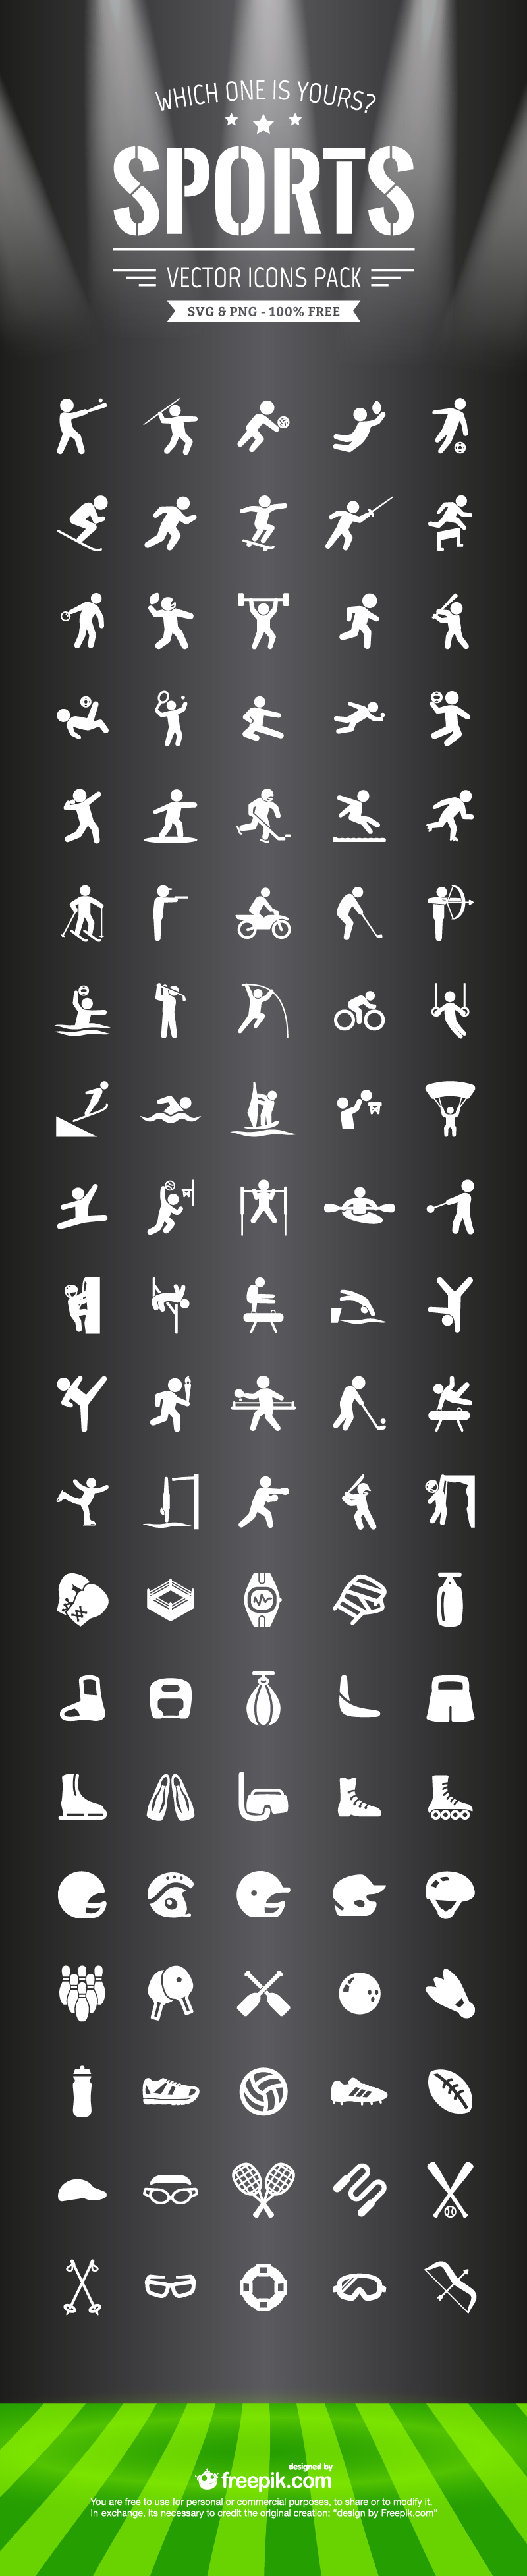 Sports-icons-01